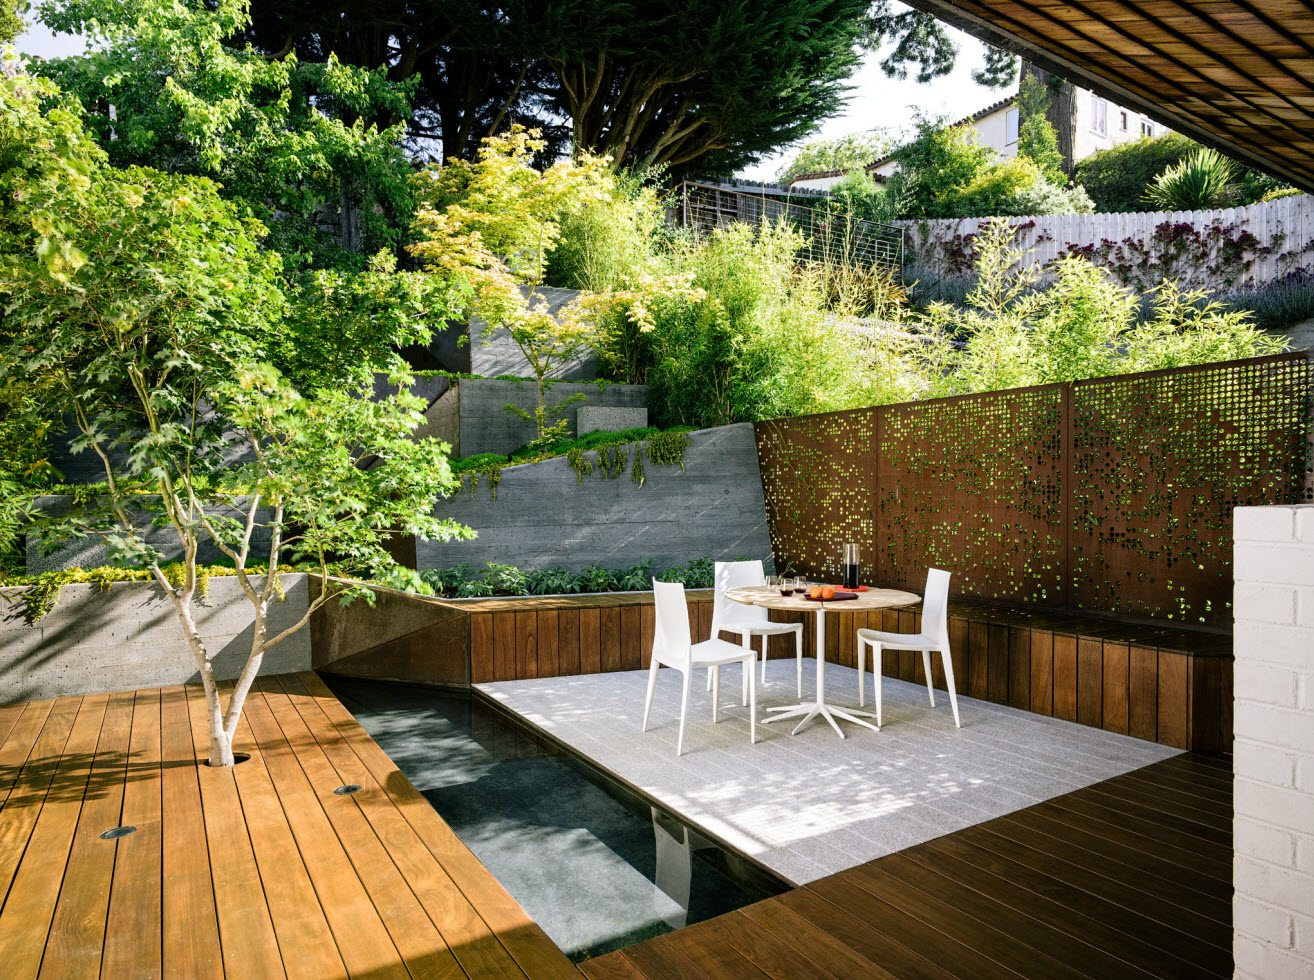 Hilgard Garden by Mary Barensfeld Architecture